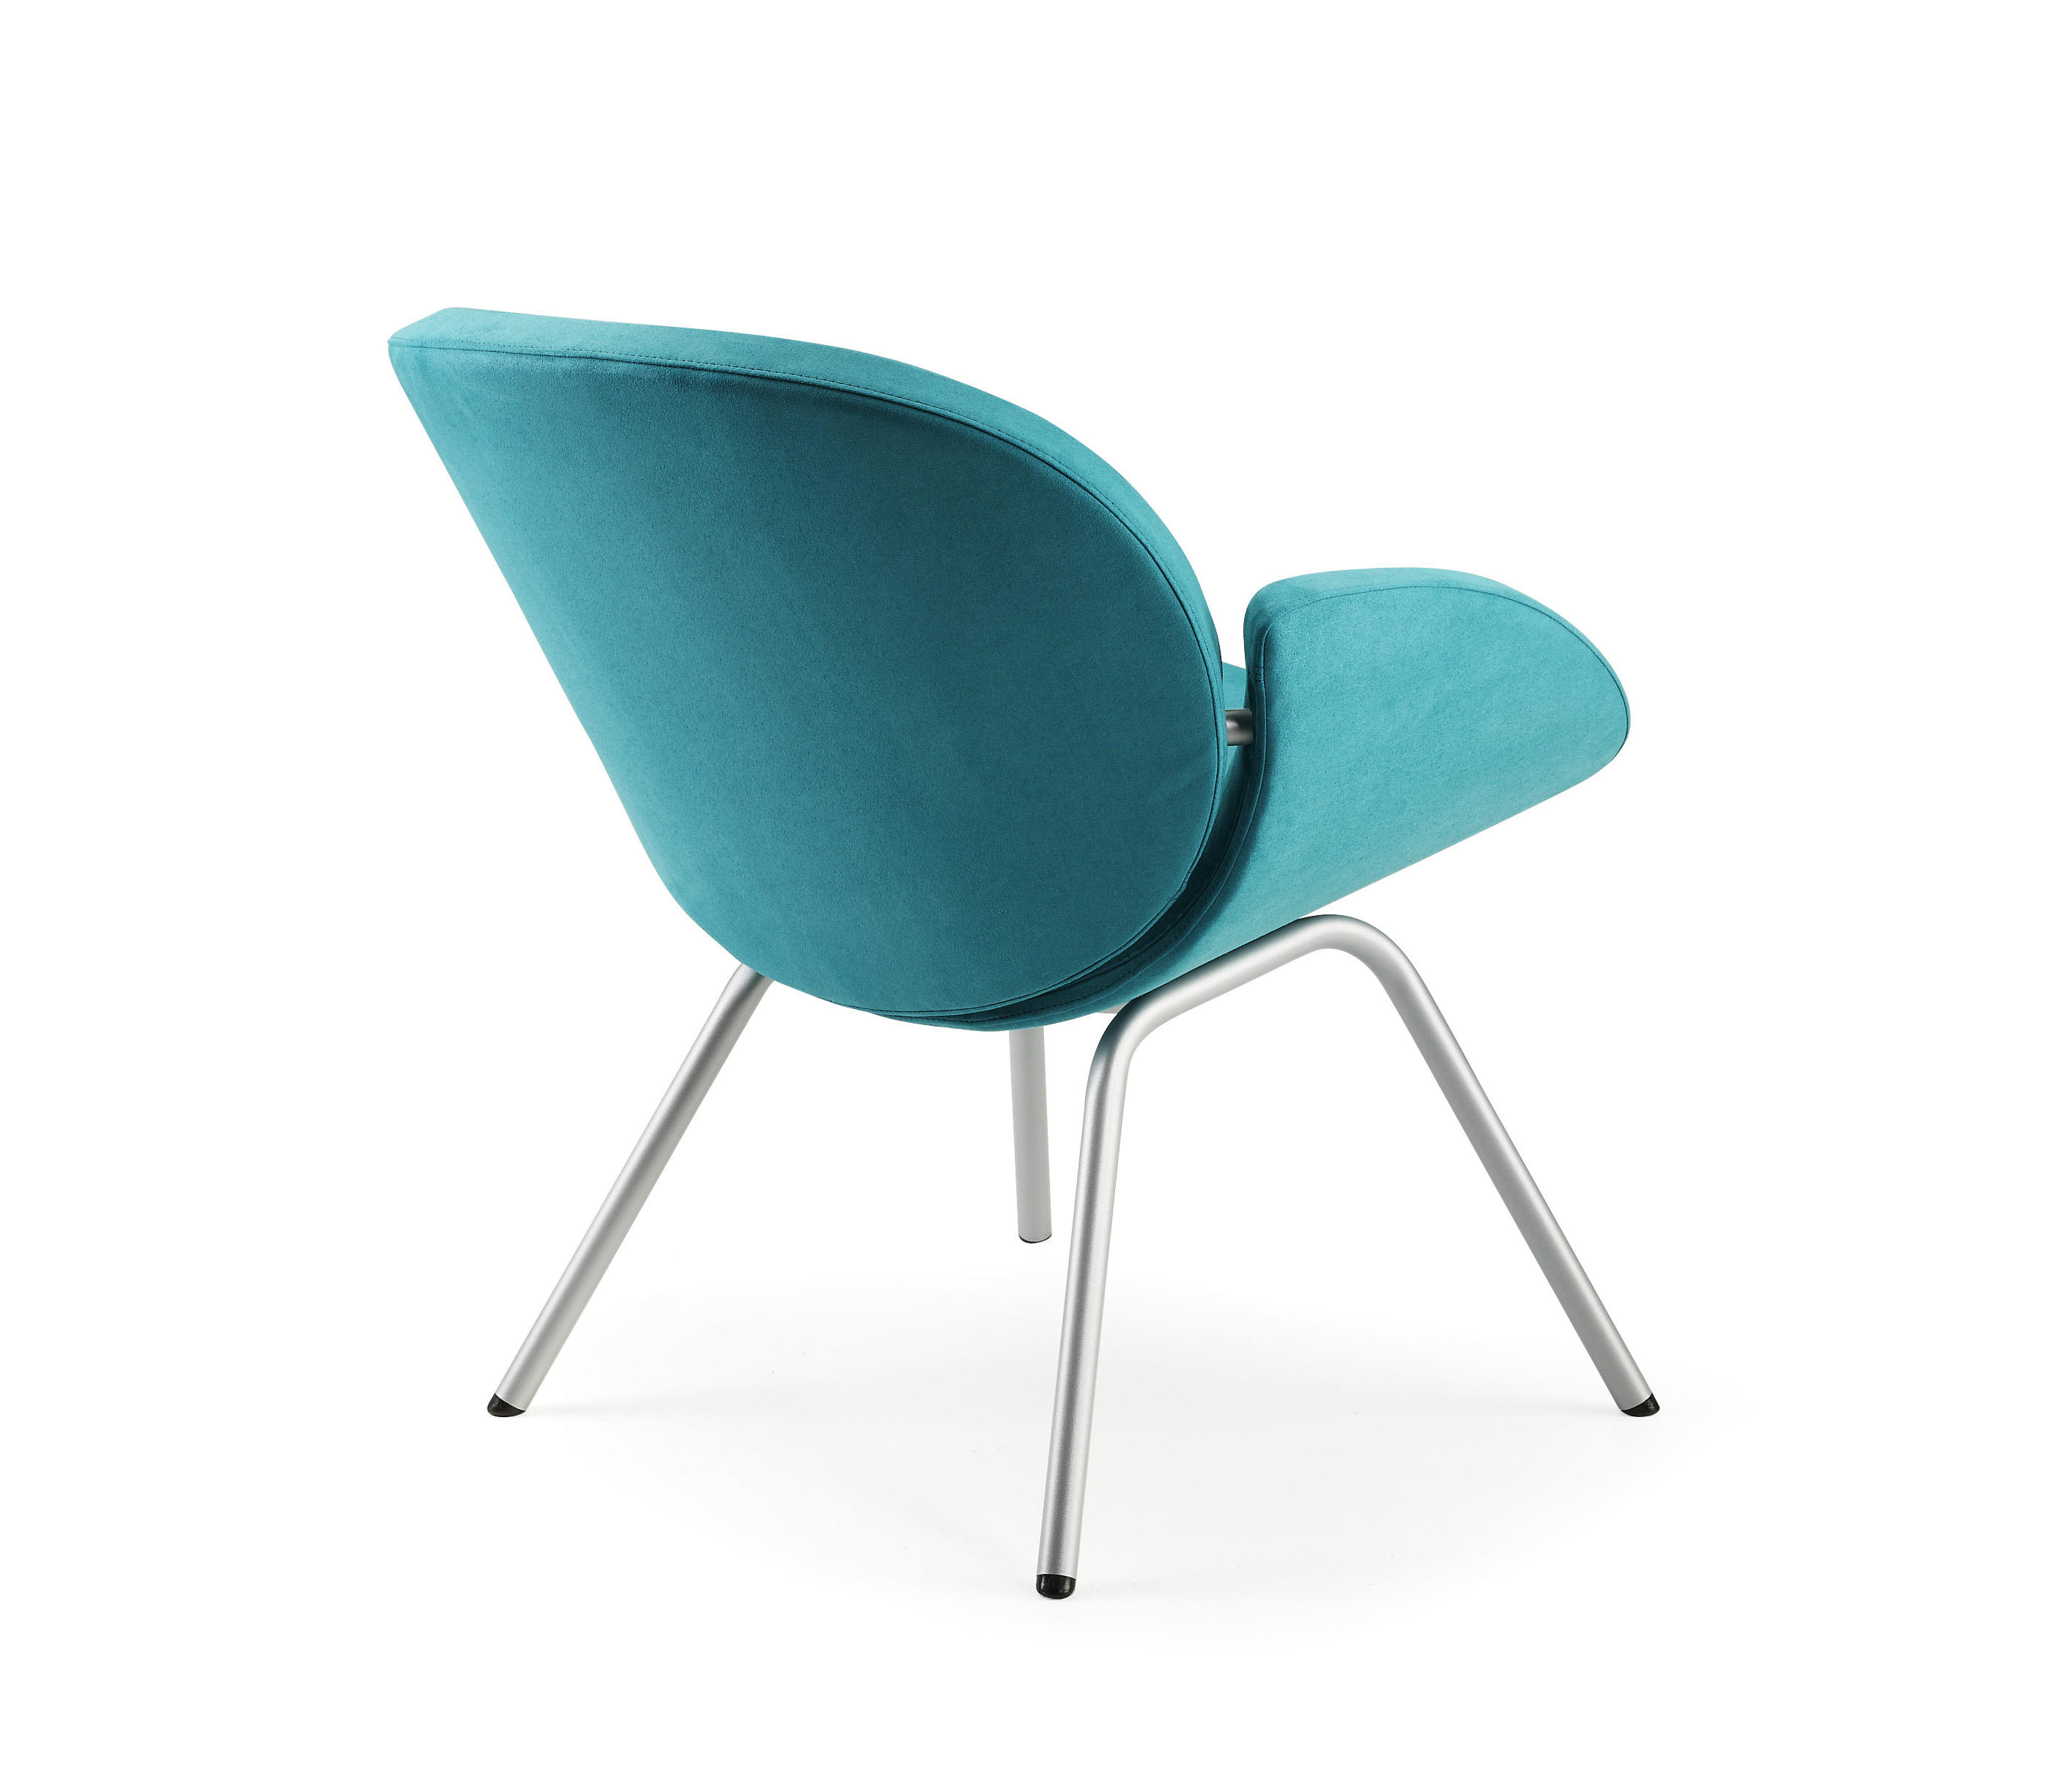 ... Twin lounge chair by Helland | Armchairs  sc 1 st  Architonic & TWIN LOUNGE CHAIR - Armchairs from Helland | Architonic